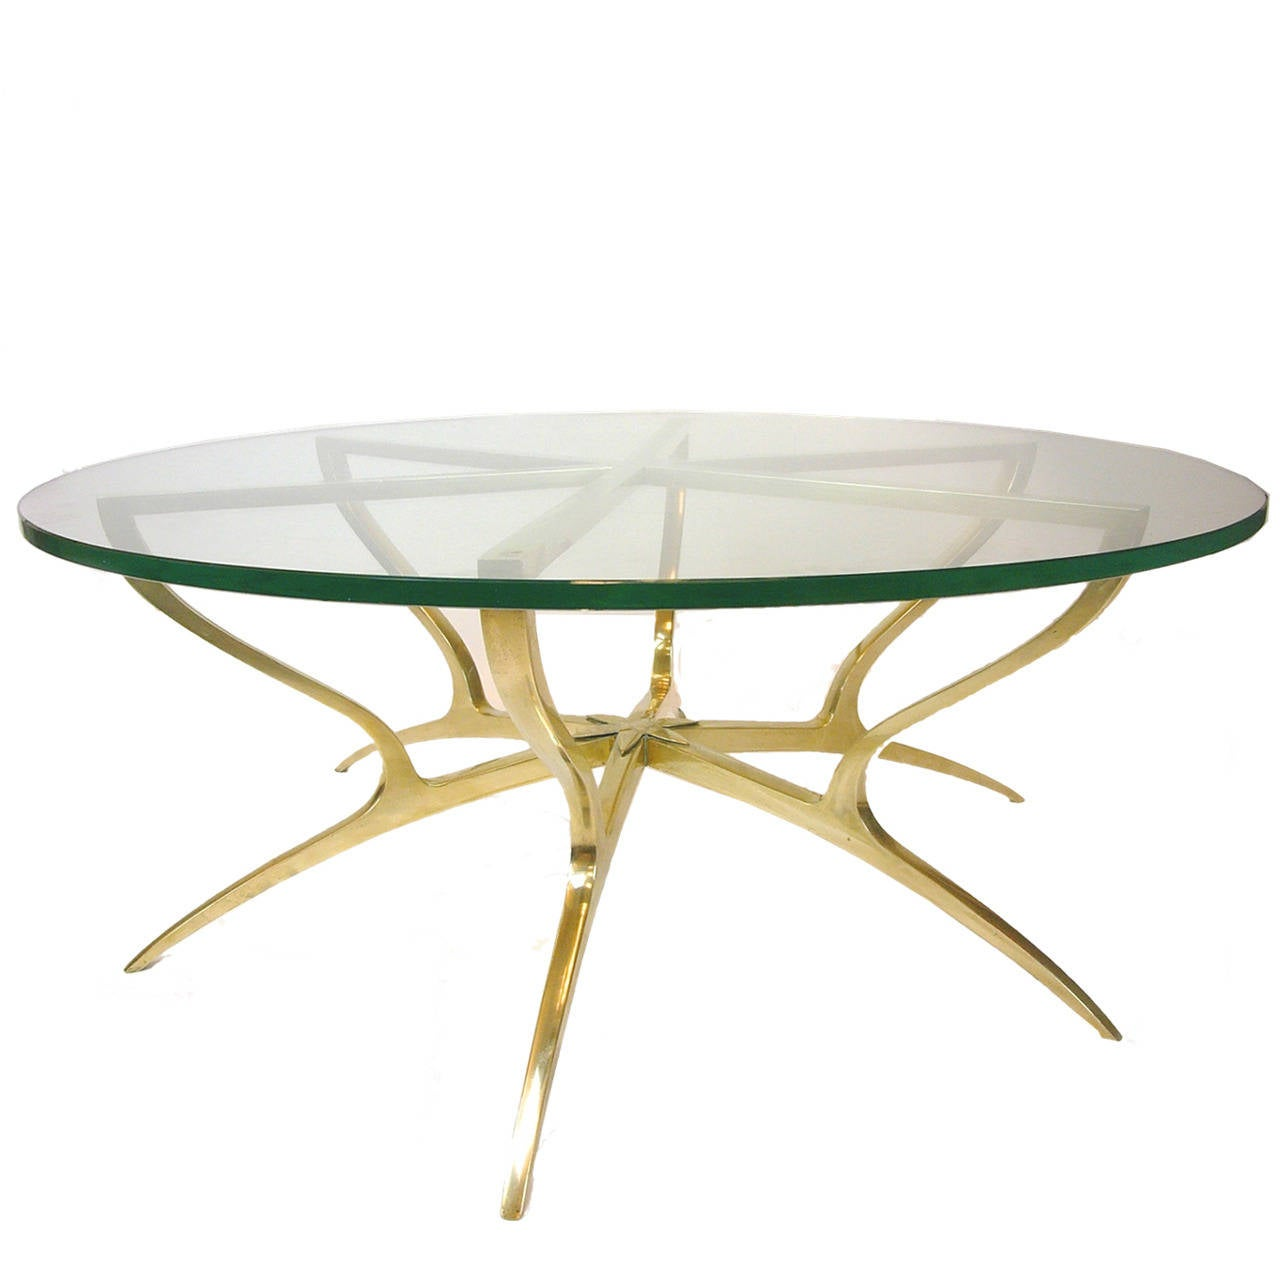 Heavy Solid Brass With Glass Italian Style Spider Legged Coffee Table At 1stdibs